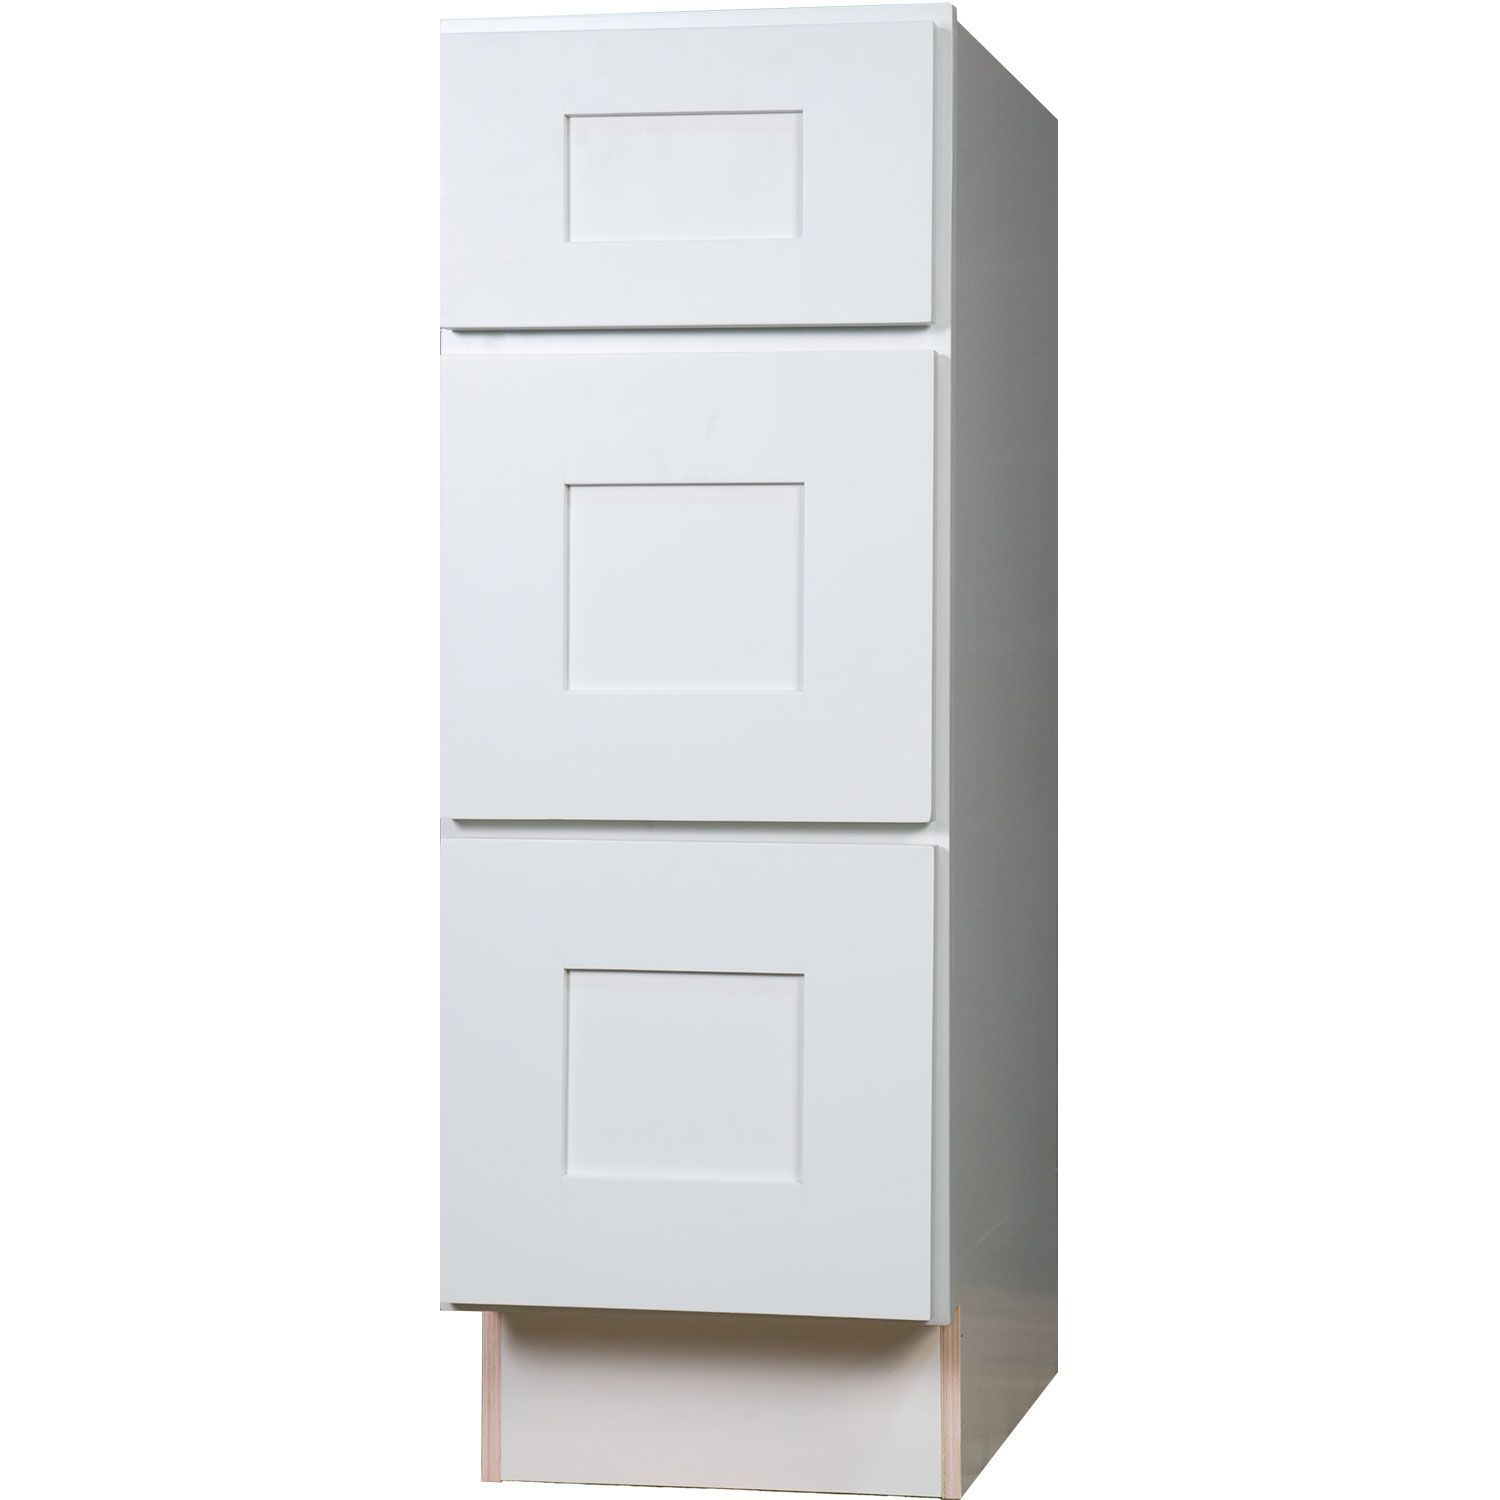 Bathroom Vanity Three Drawer Base Cabinet in Shaker White with Soft ...